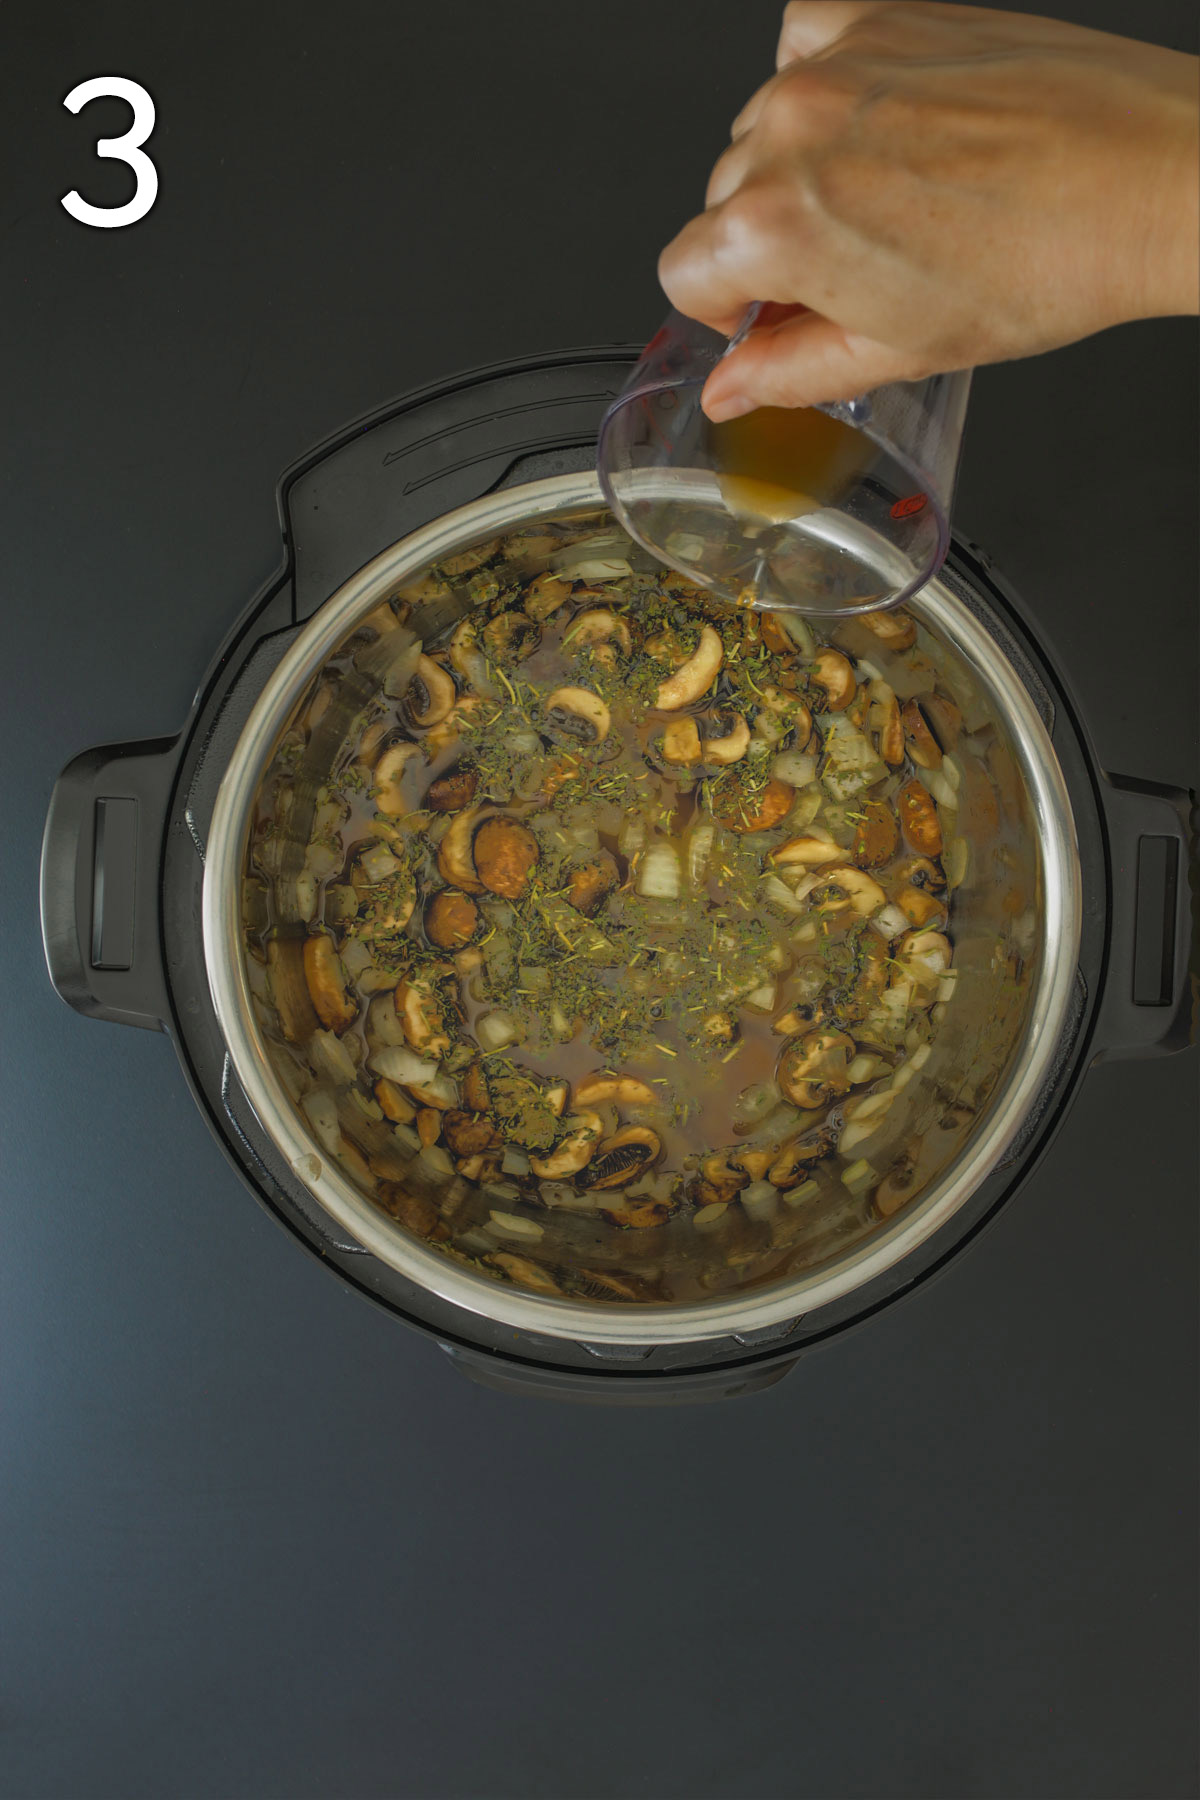 adding beef broth to vegetables and herbs in pot.